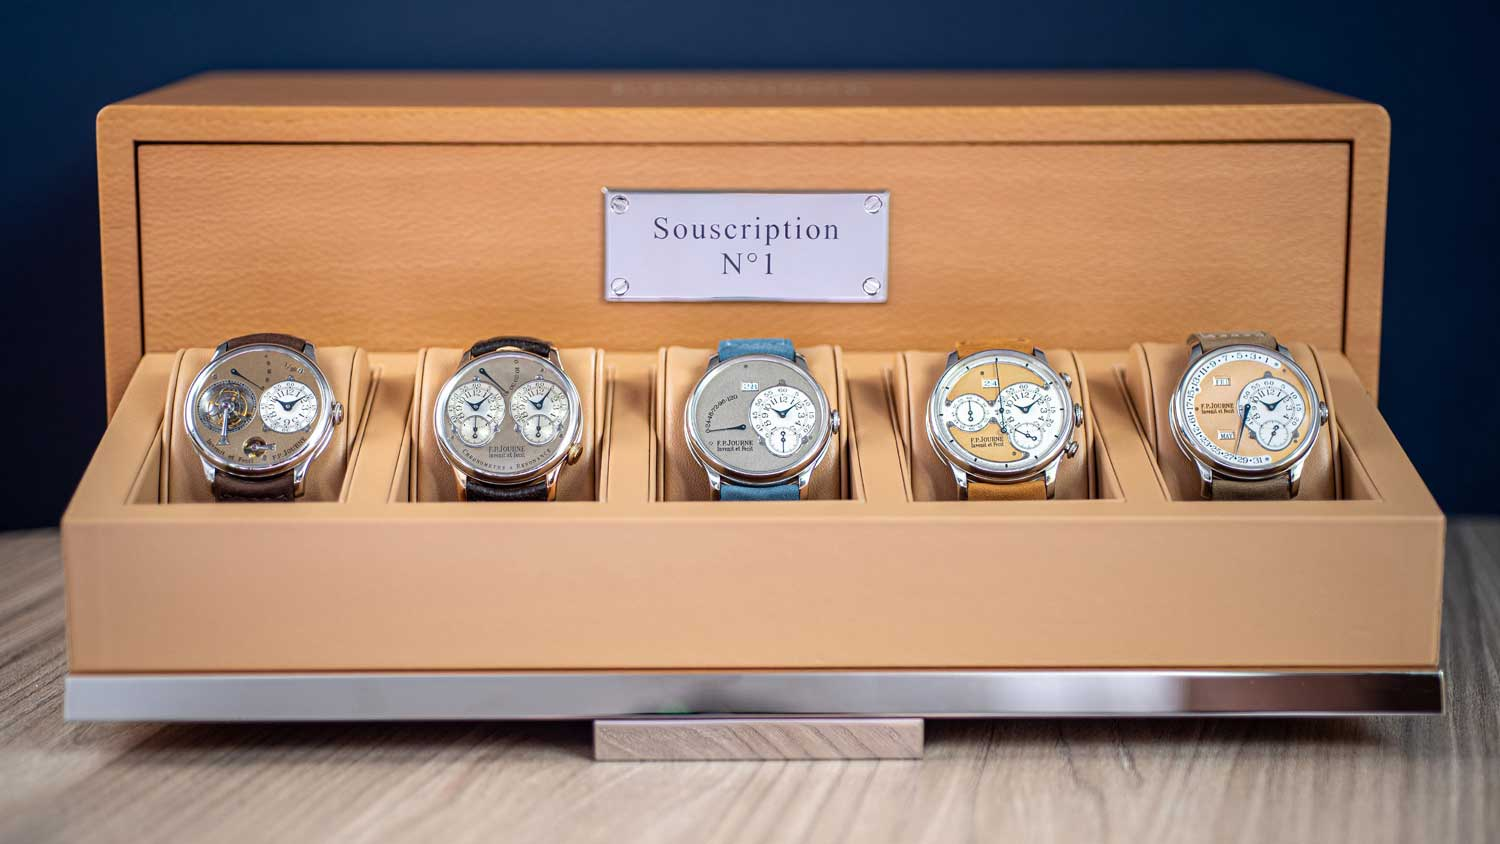 With total sales of CHF 9.8 million from 44 lots in the first half of 2021, F.P. Journe is now among the top three brands in the auction market